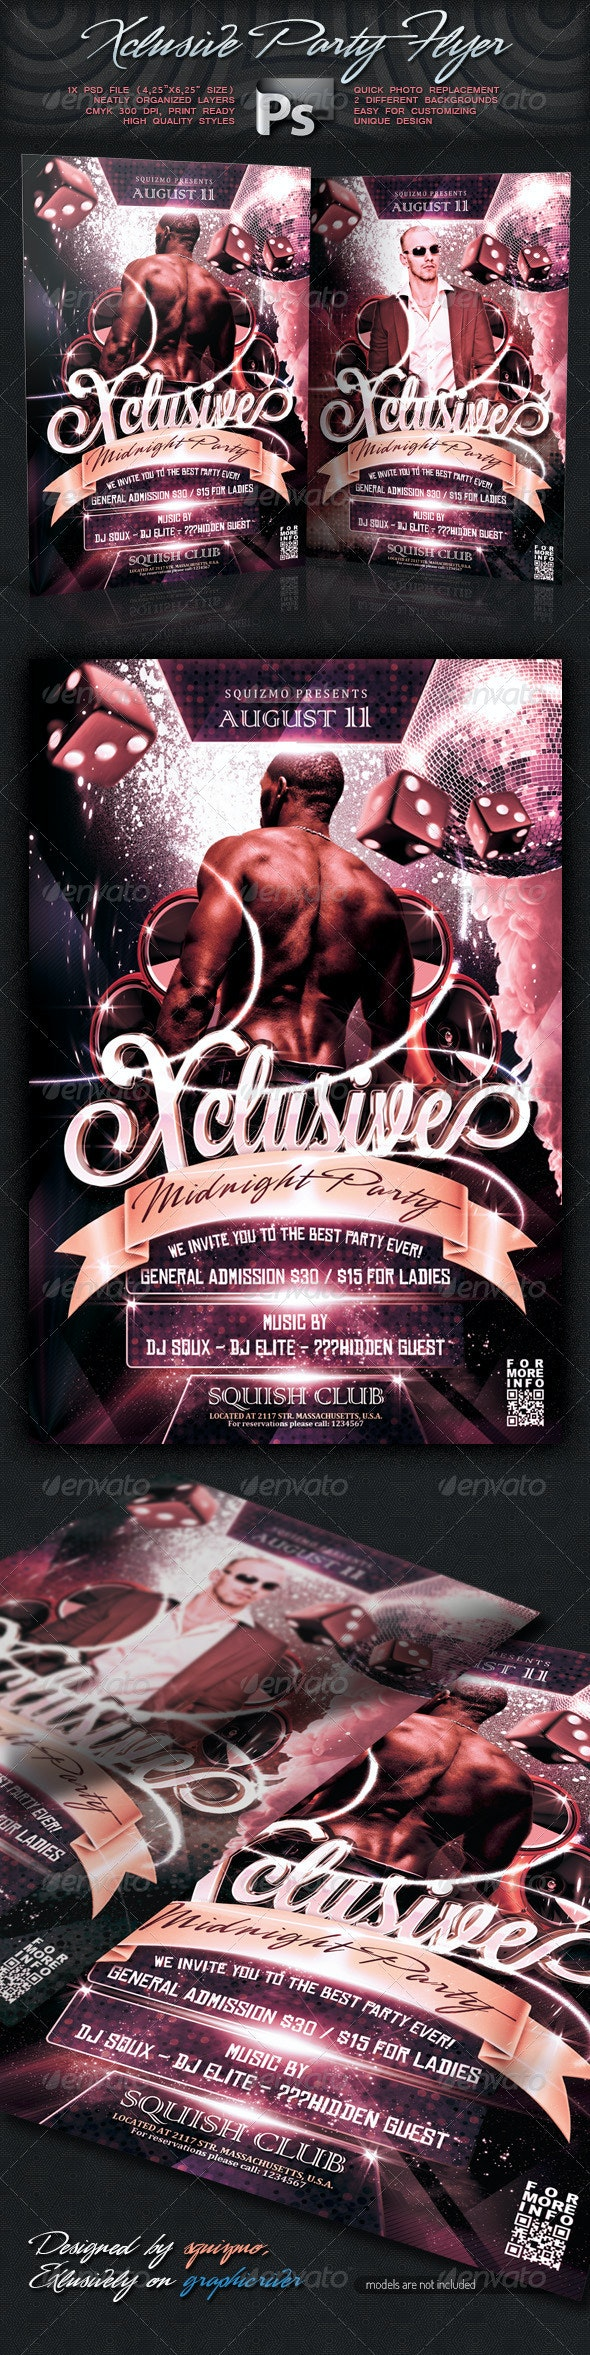 Xclusive Party Flyer - Clubs & Parties Events